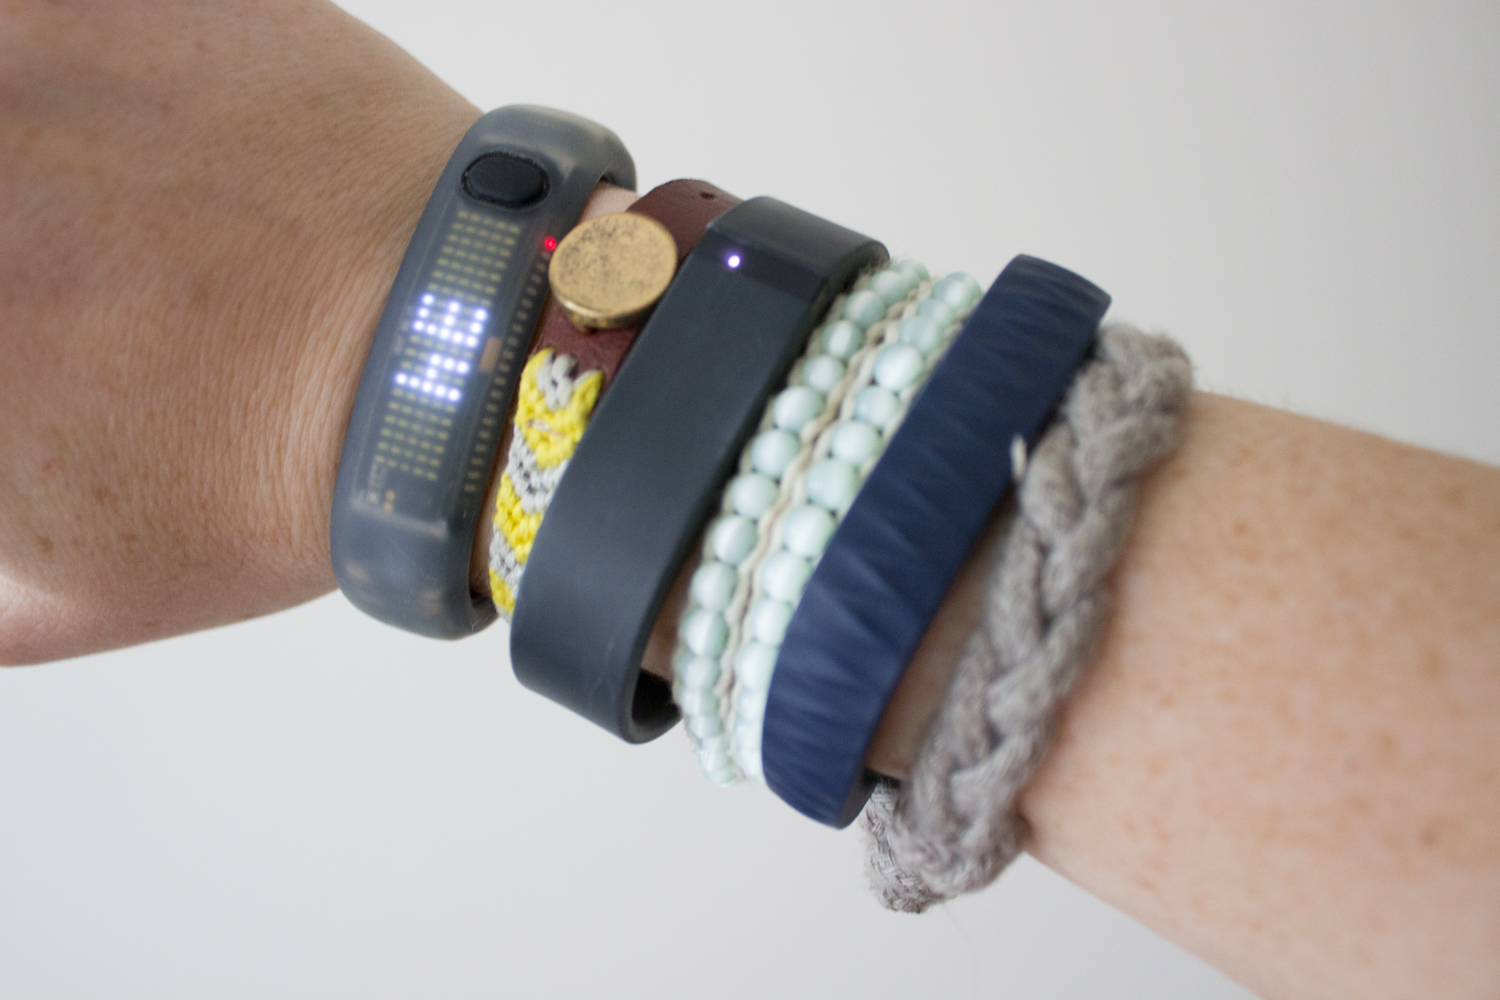 The Nike Fuelband, Fitbit Flex, and Jawbone up, from left to right.